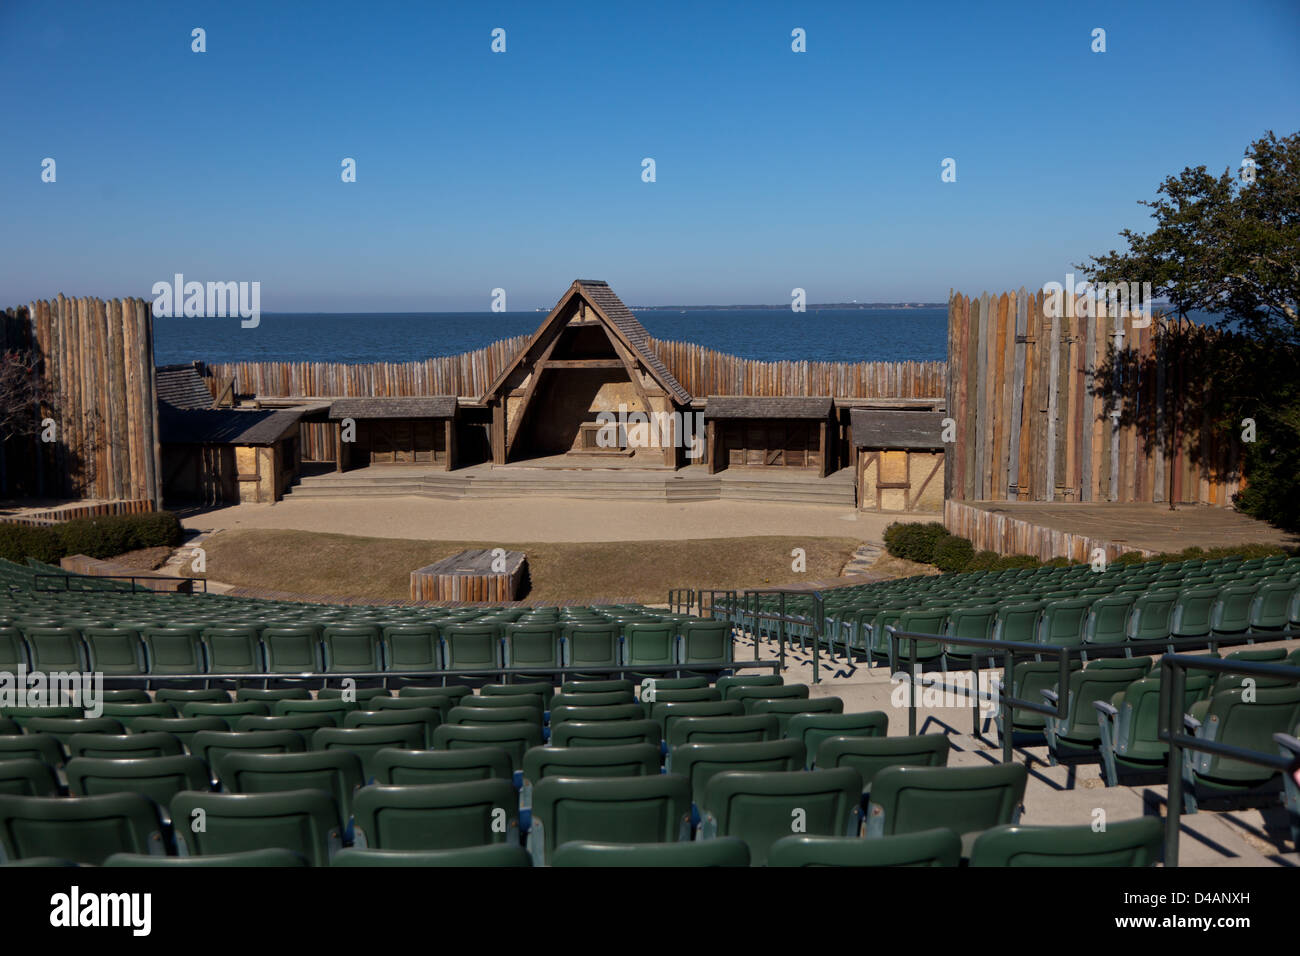 Waterside Theater at Fort Raleigh National Historic Site on Roanoke Island in North Carolina - Stock Image